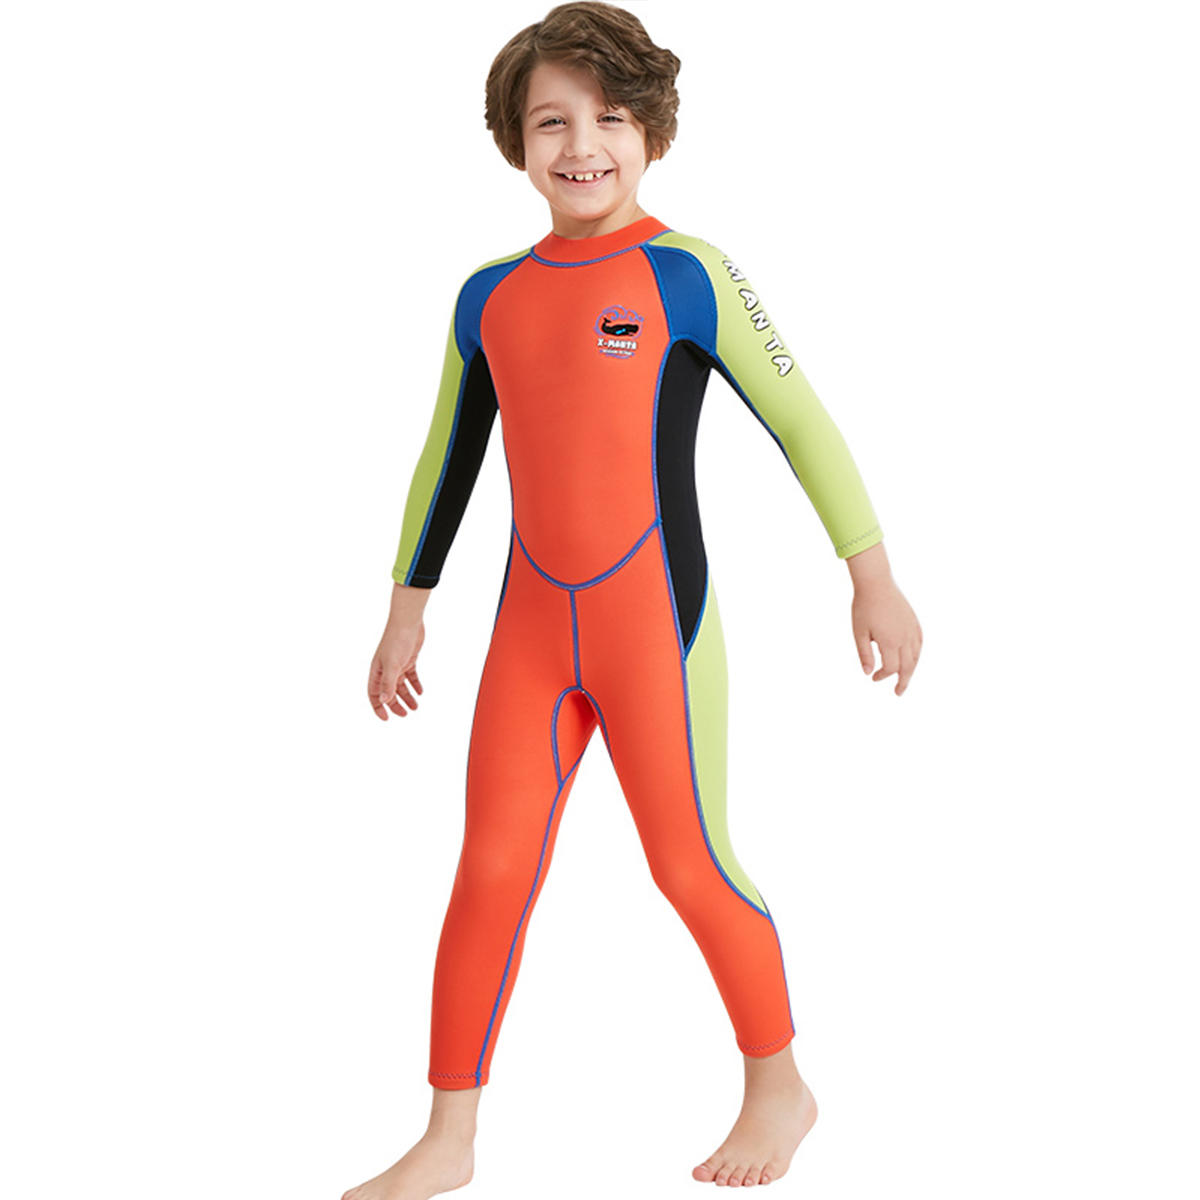 Kids Boy Scuba One-piece Diving Suit UV Protection Thermal Snorkeling Wetsuit Surfing Swimwear - 5